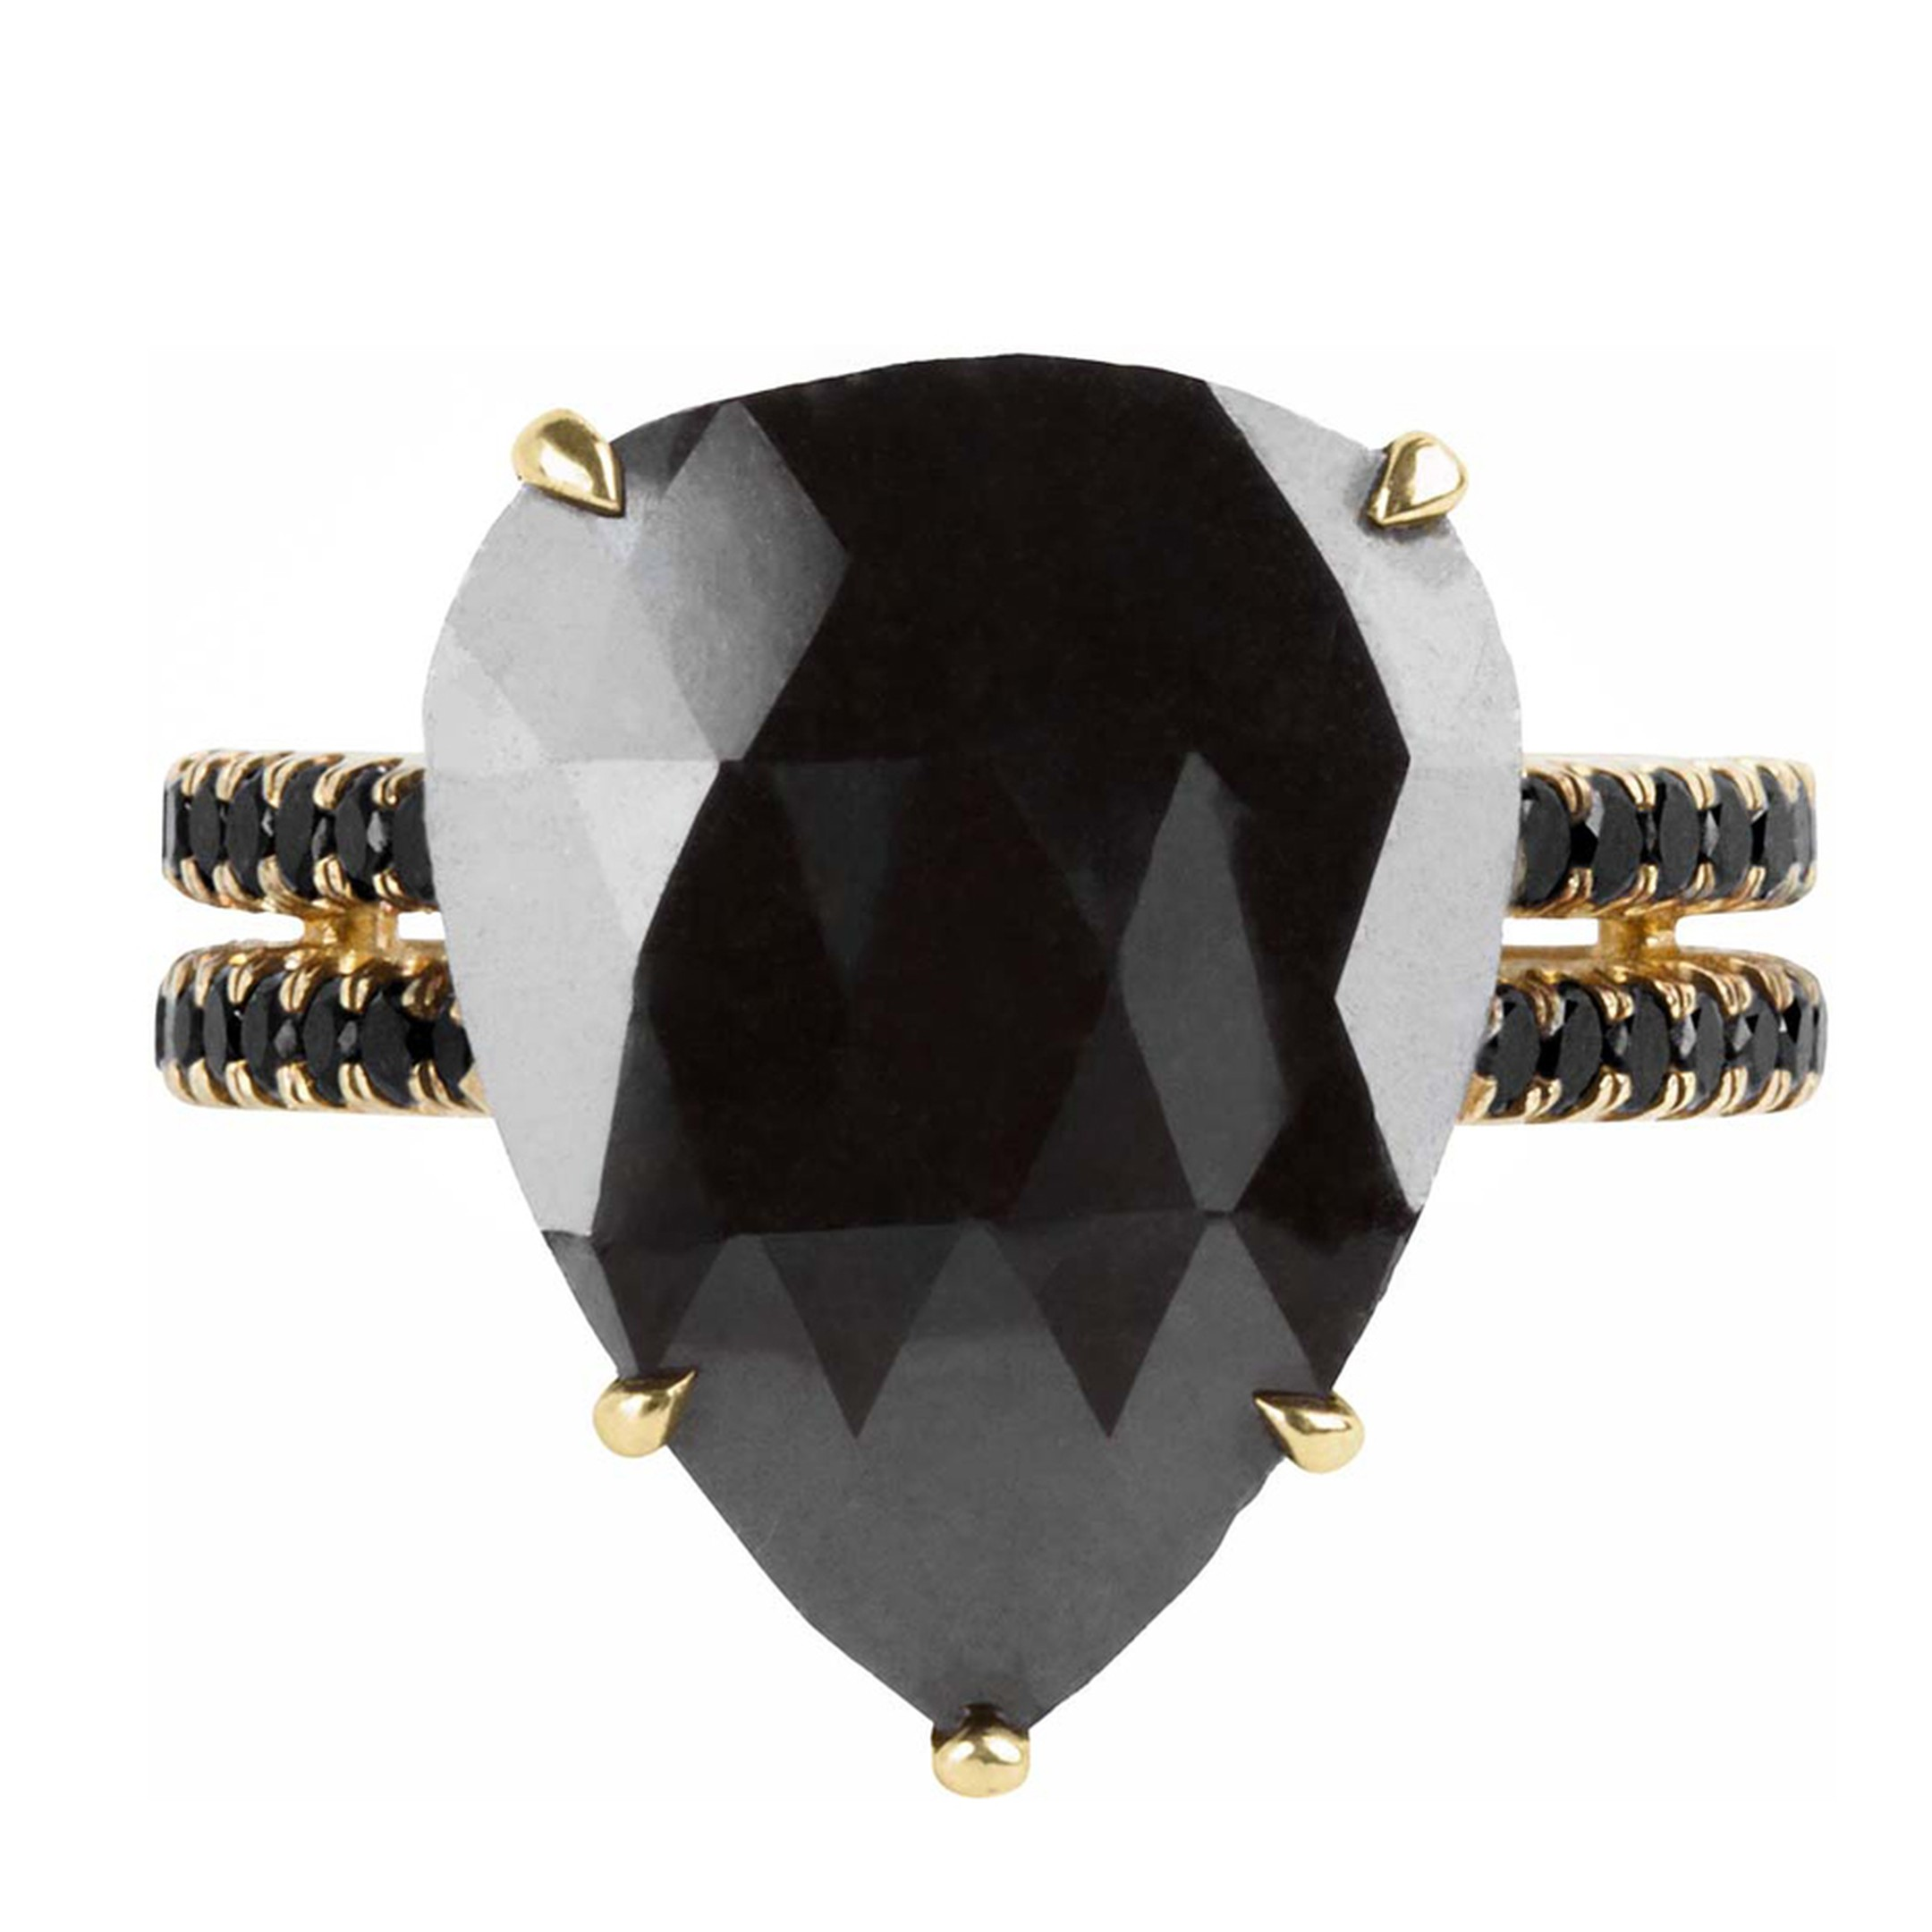 Joanne Fiske's jewellery line Thirteen31 only features black diamonds, such as this 7ct. pear-shaped black diamond ring with a gold double-band set with pavé black diamonds.